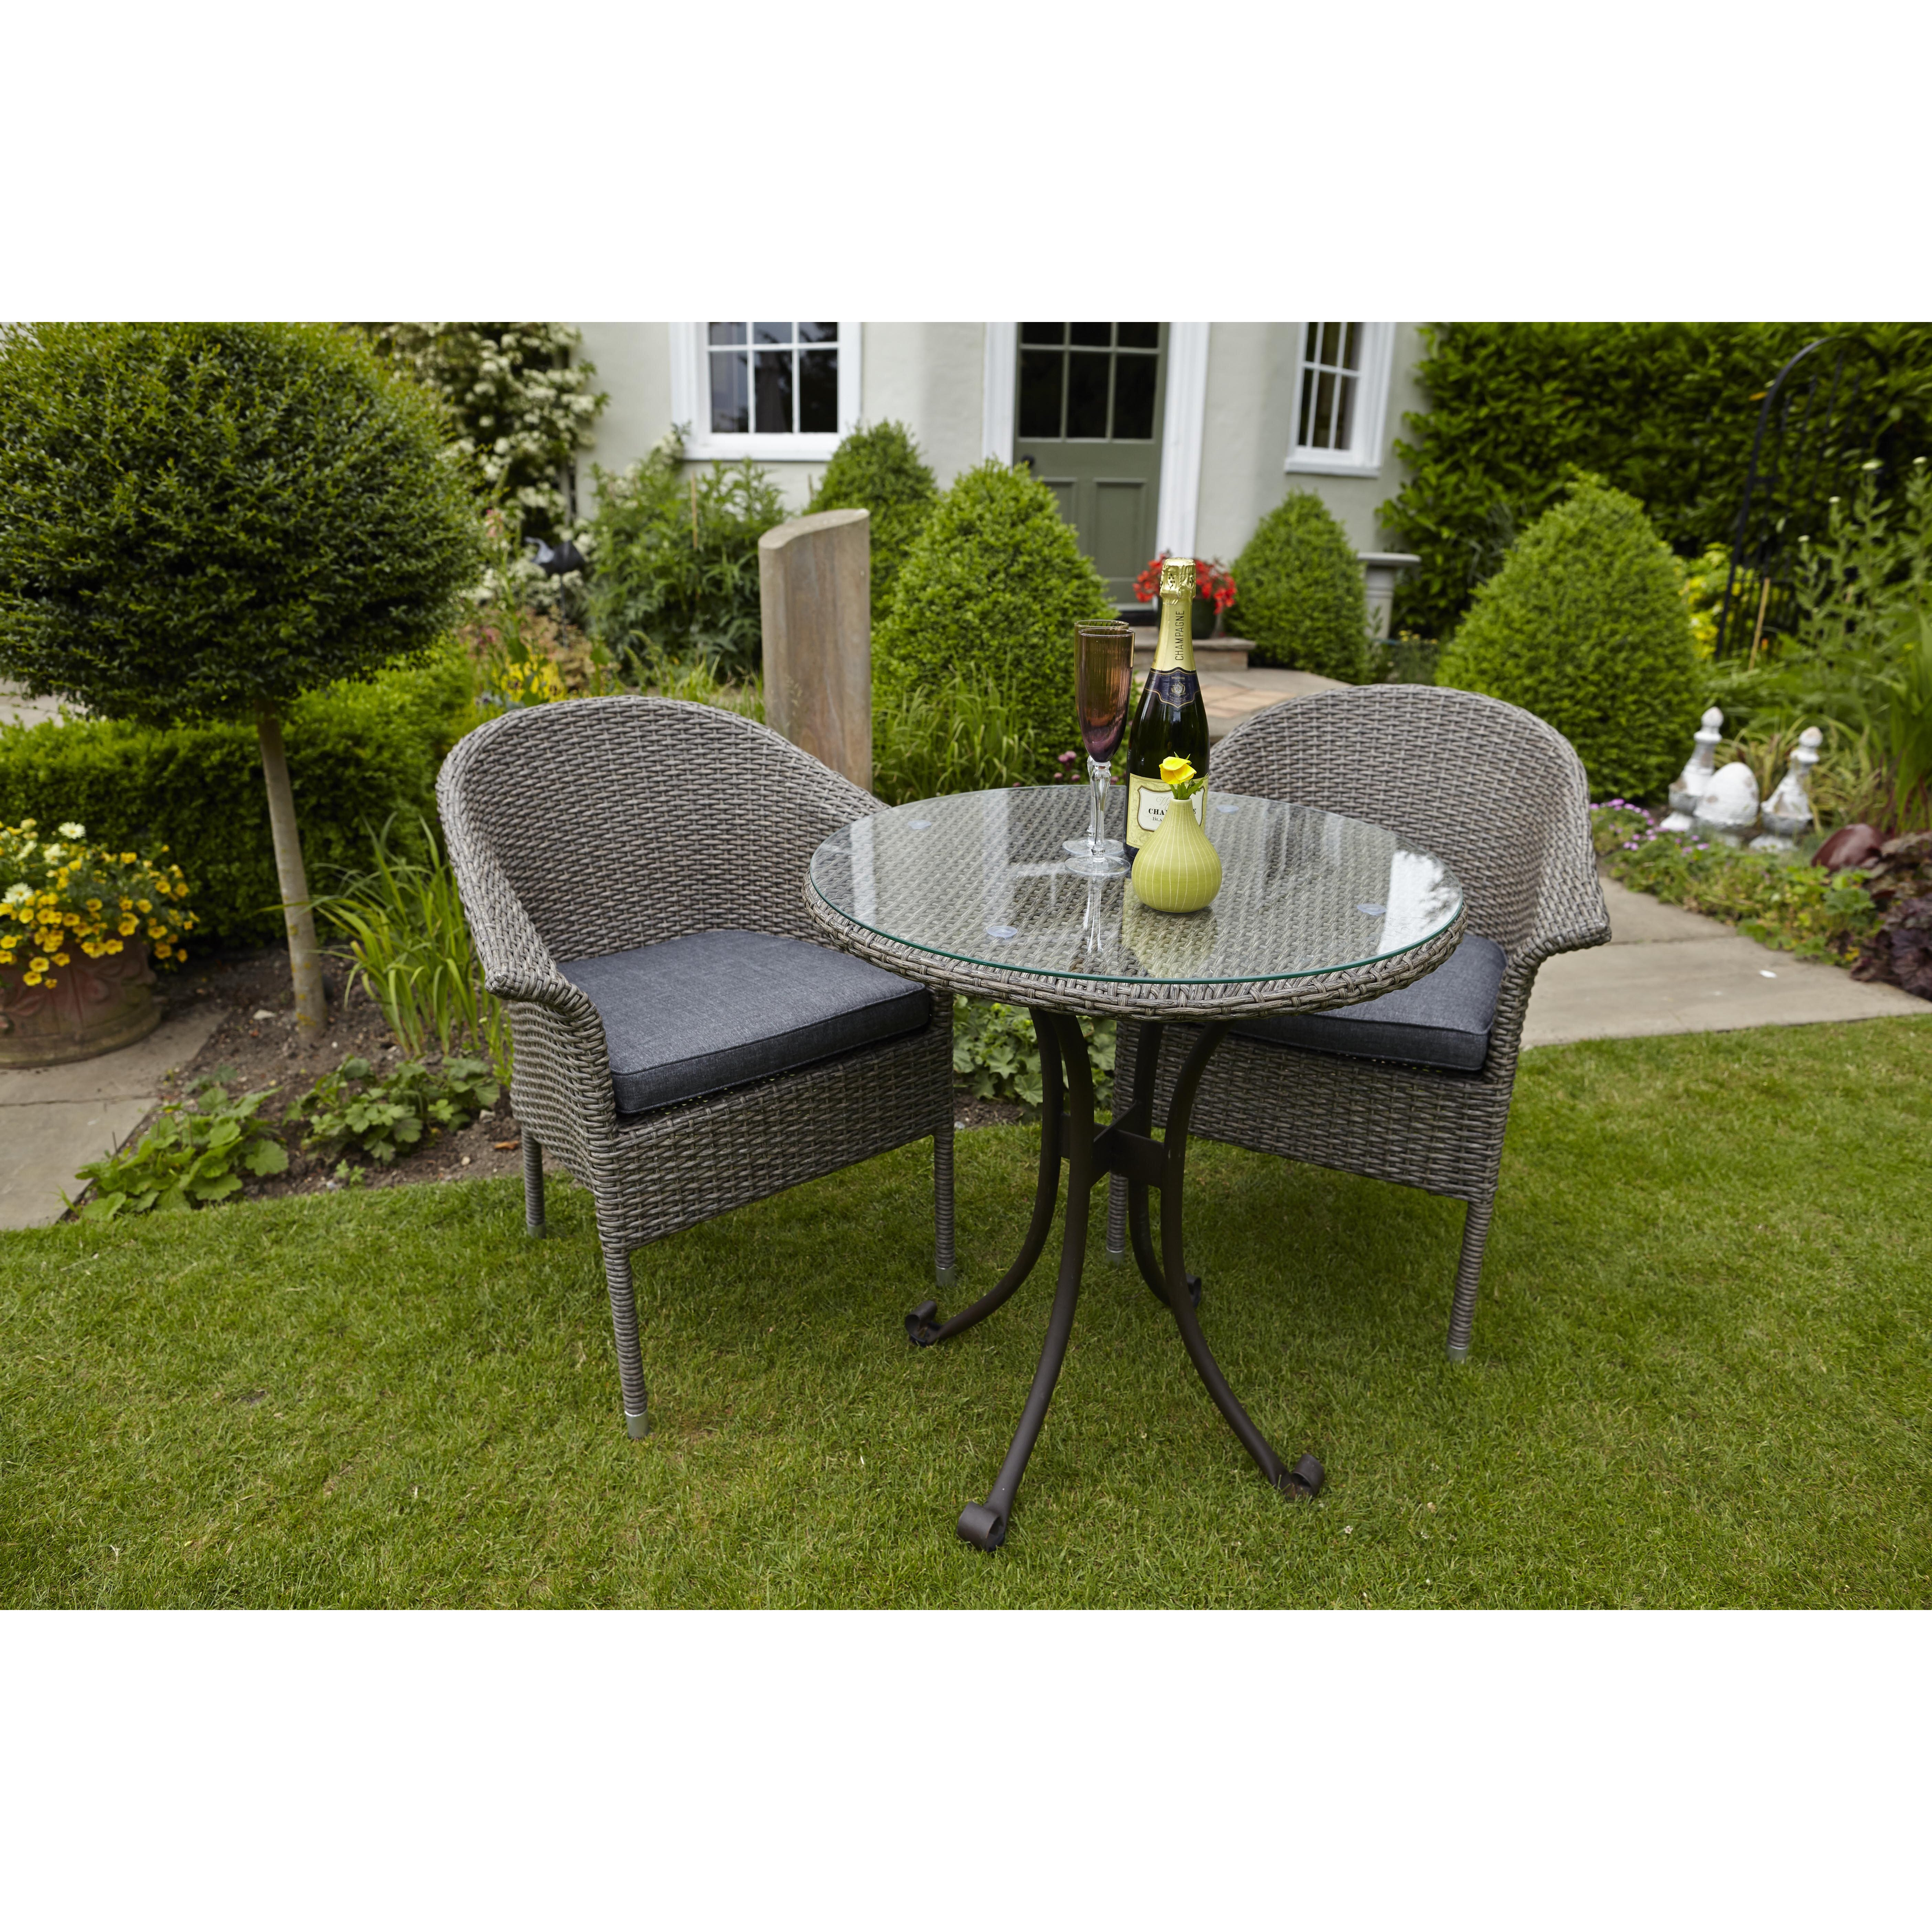 Lg Outdoor Saigon Rustic 2 Seater Bistro Set Amp Reviews